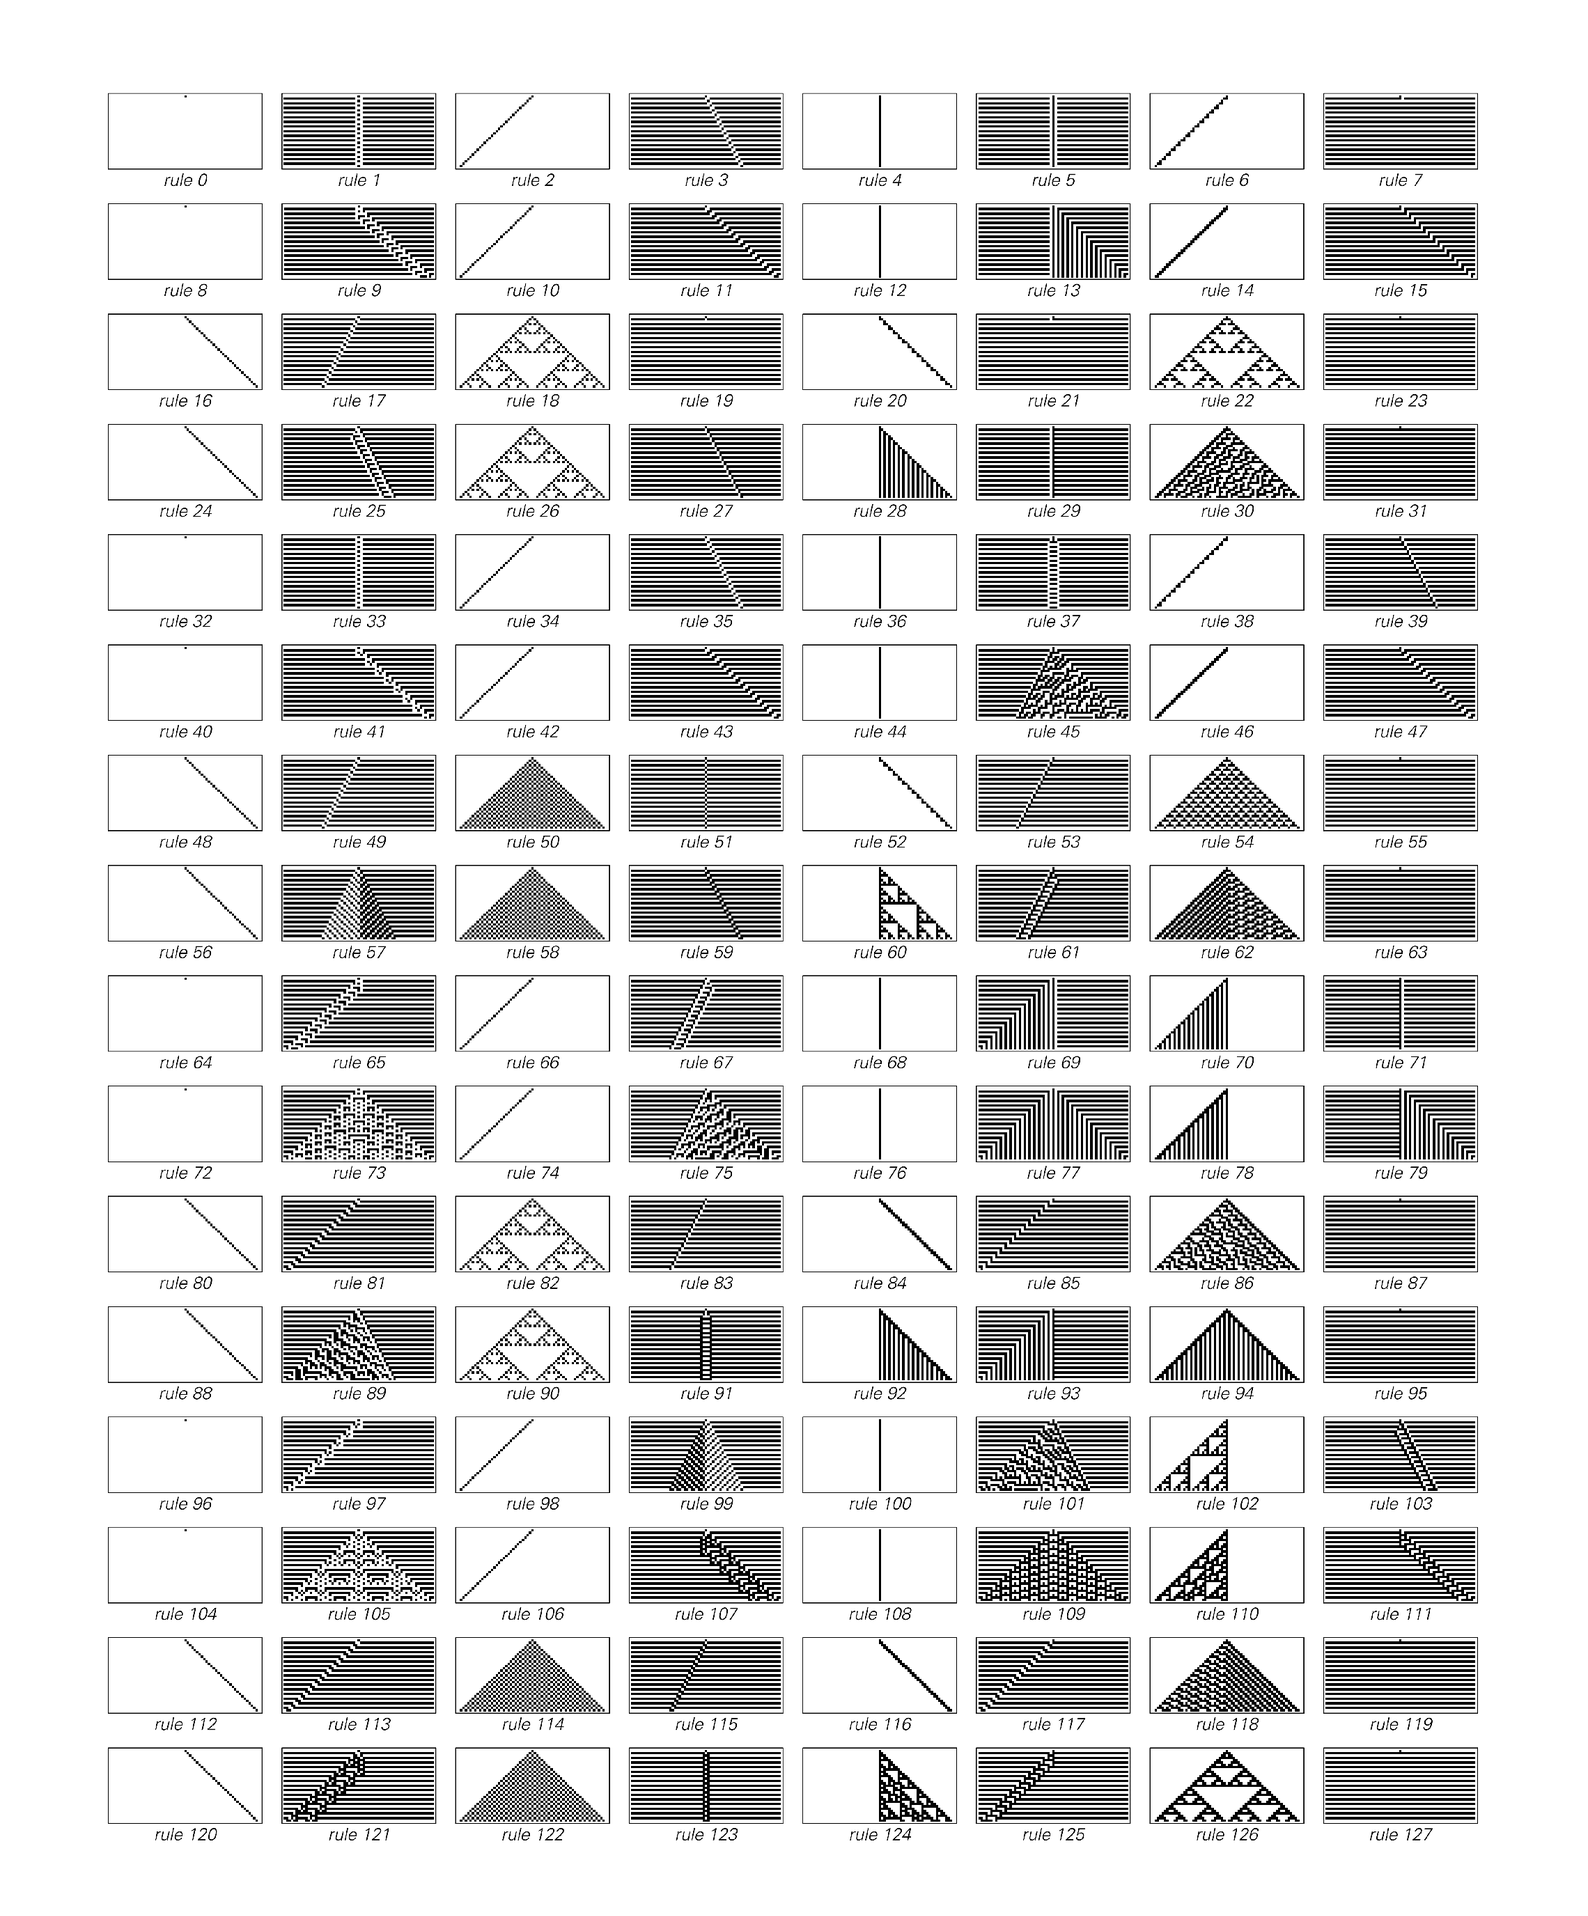 Evolution of cellular automata, continued